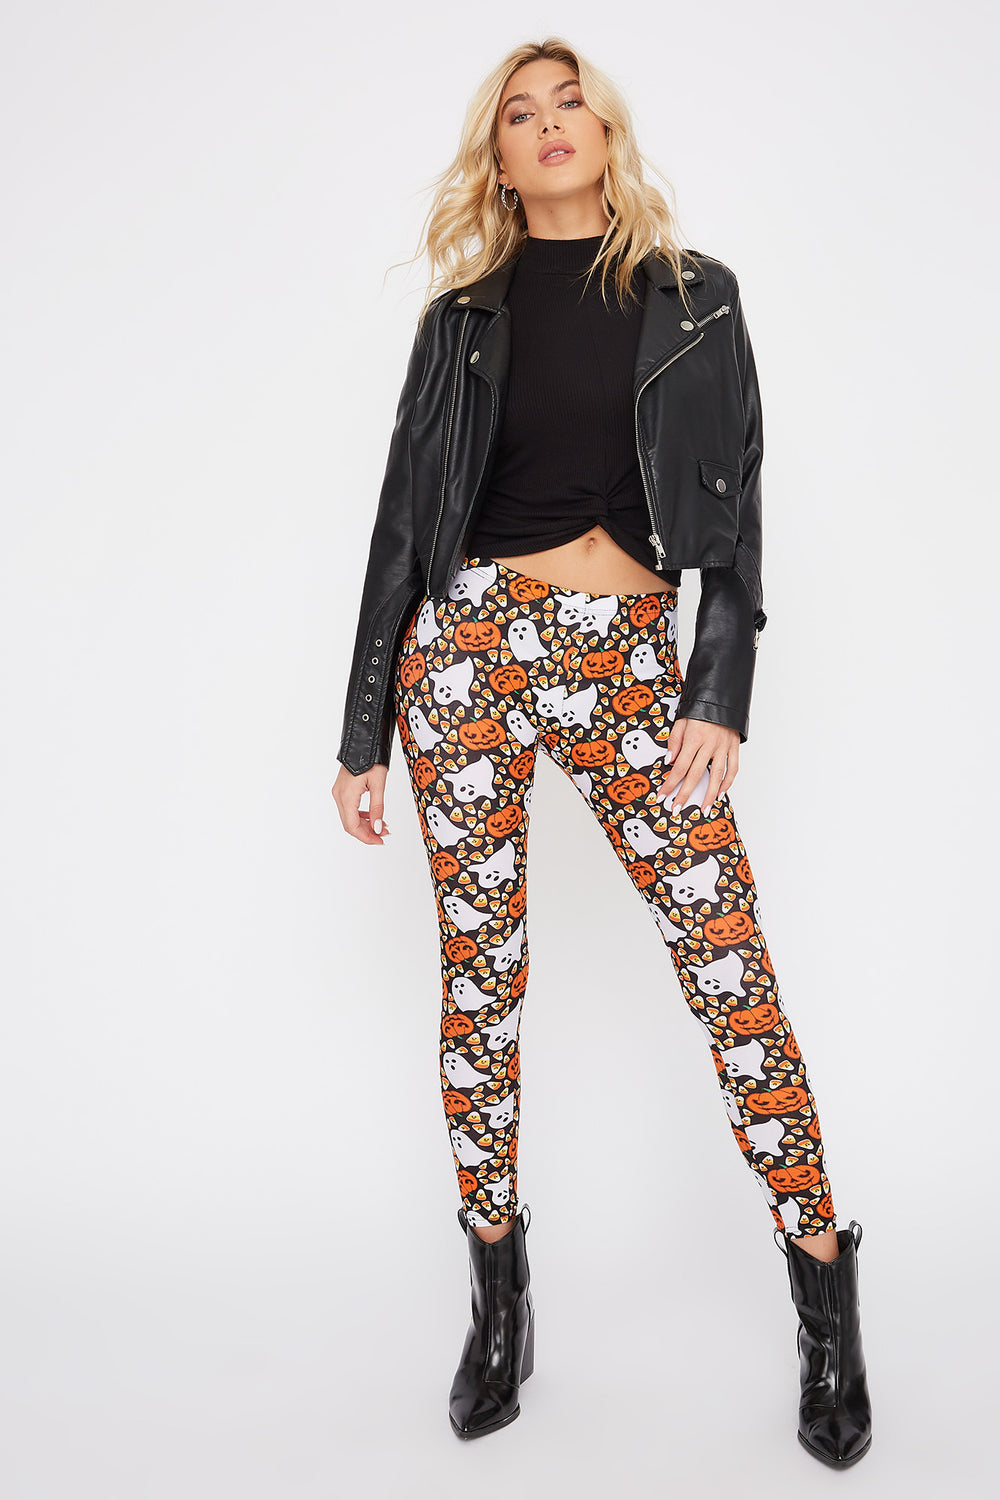 Halloween Candy Corn Legging Black